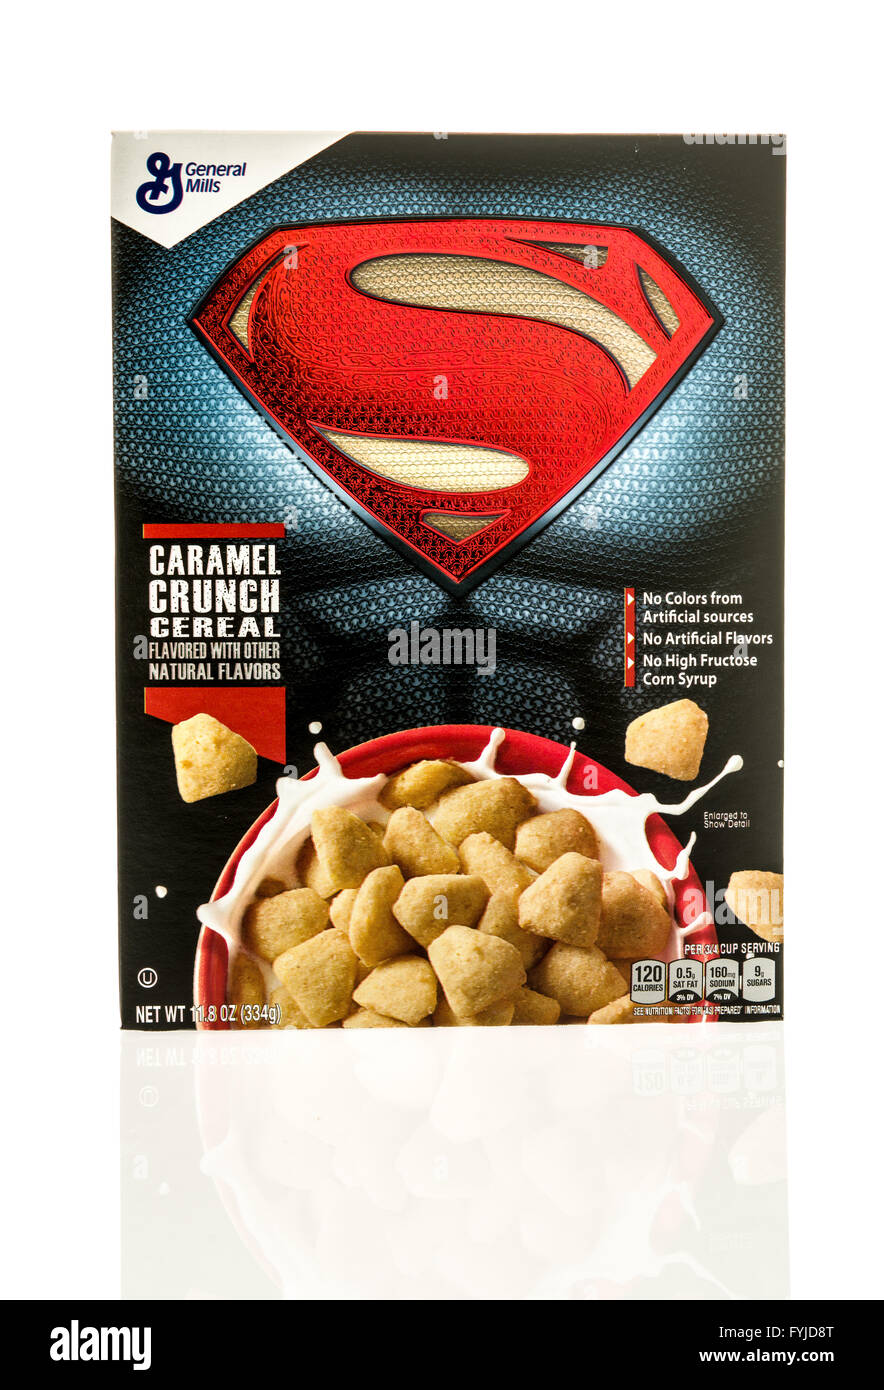 Winneconne, WI - 26 April 2016: Box of Superman cereal on an isolated background - Stock Image